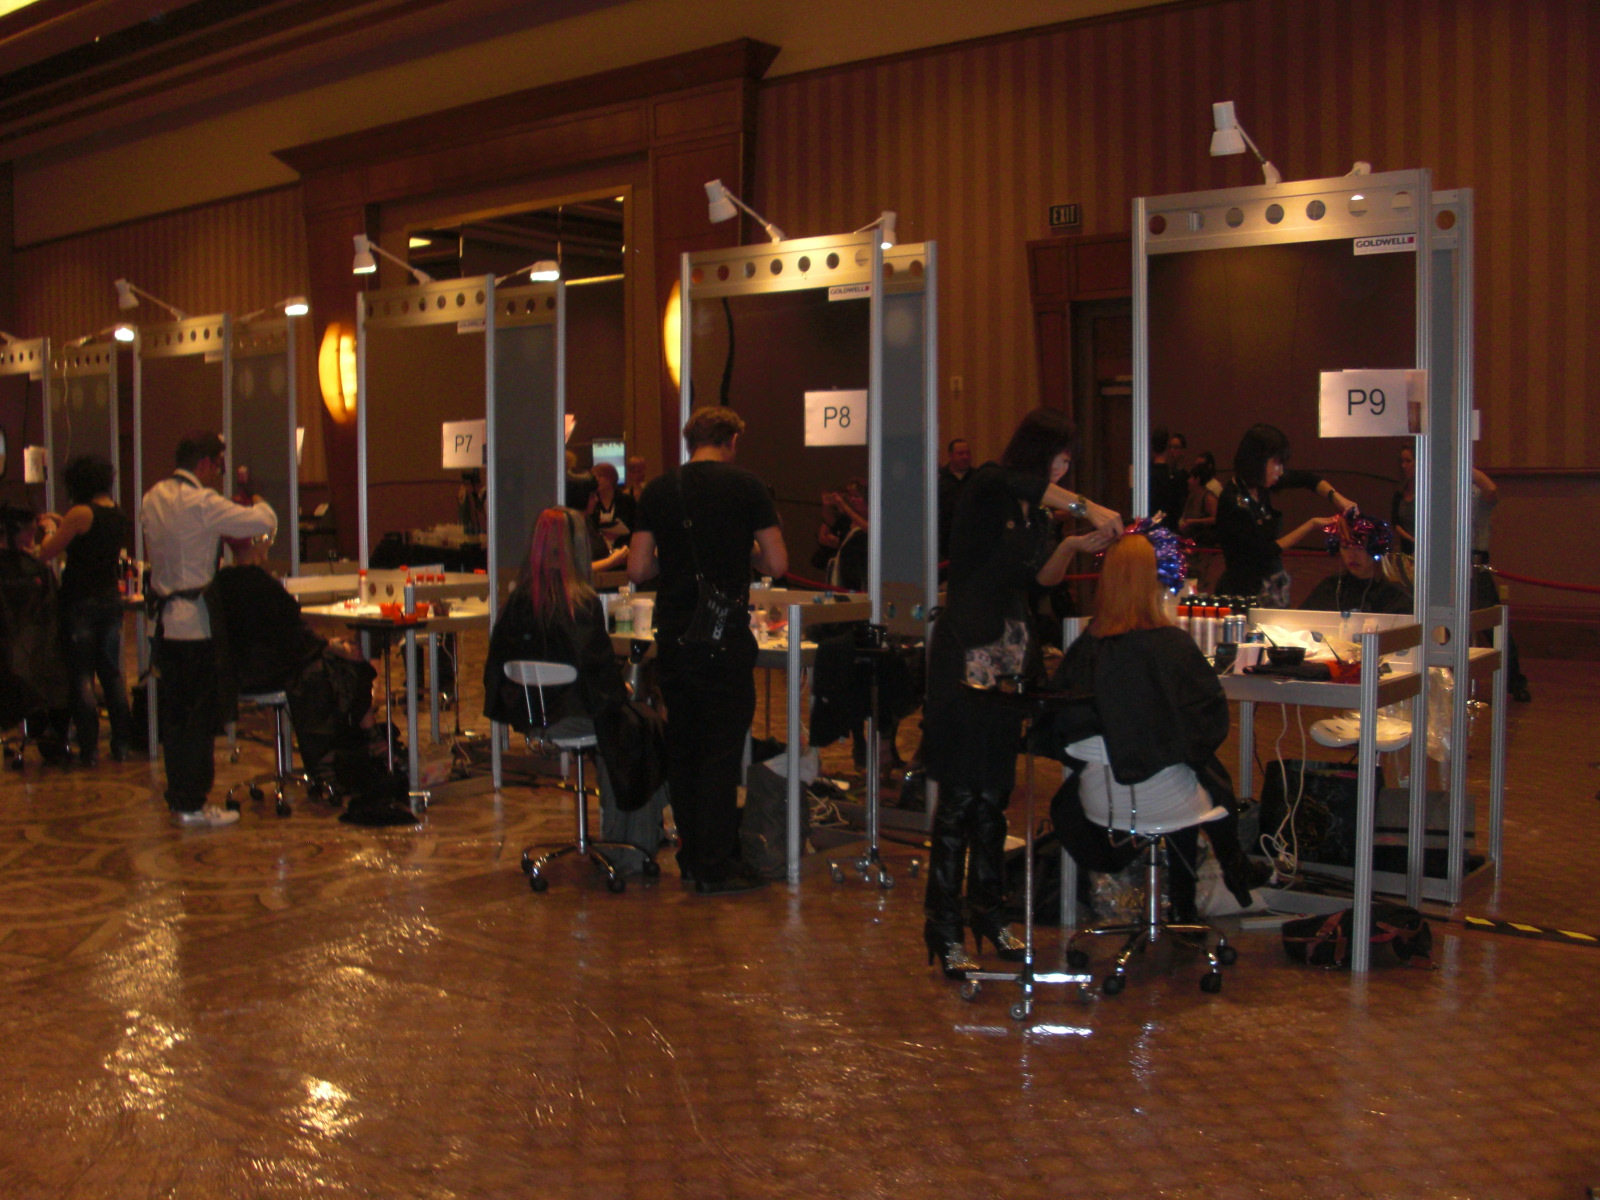 Finalists working on their models during the live competition